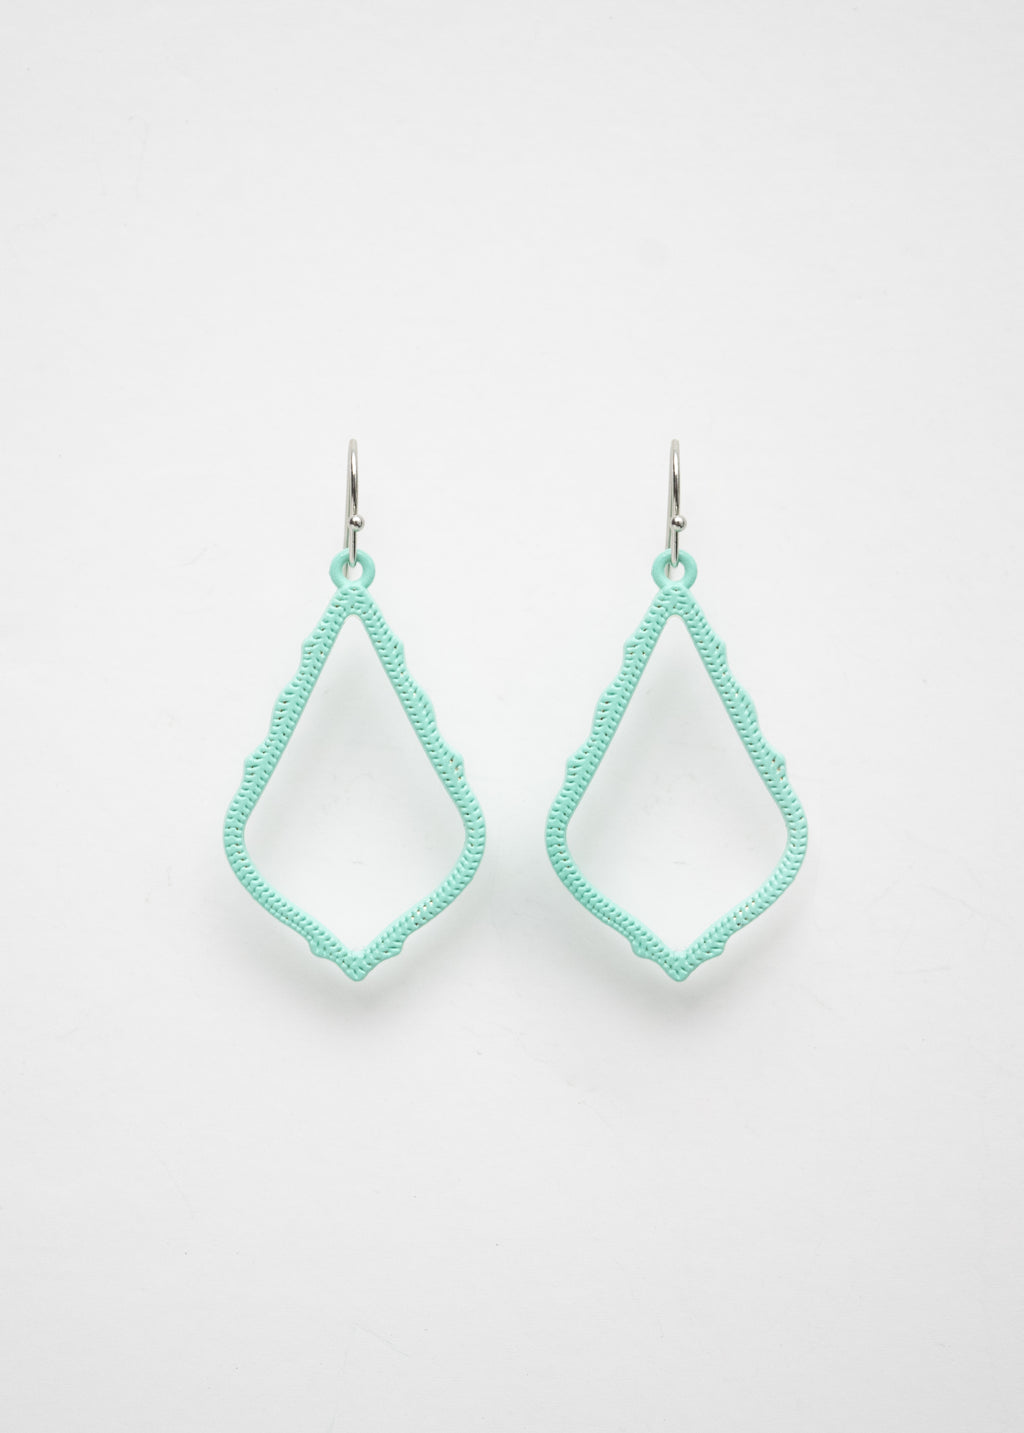 Beck & Boosh Teardrop Lace Earrings Sea foam colored teardrop shape dangle earrings with scalloped edges and open center